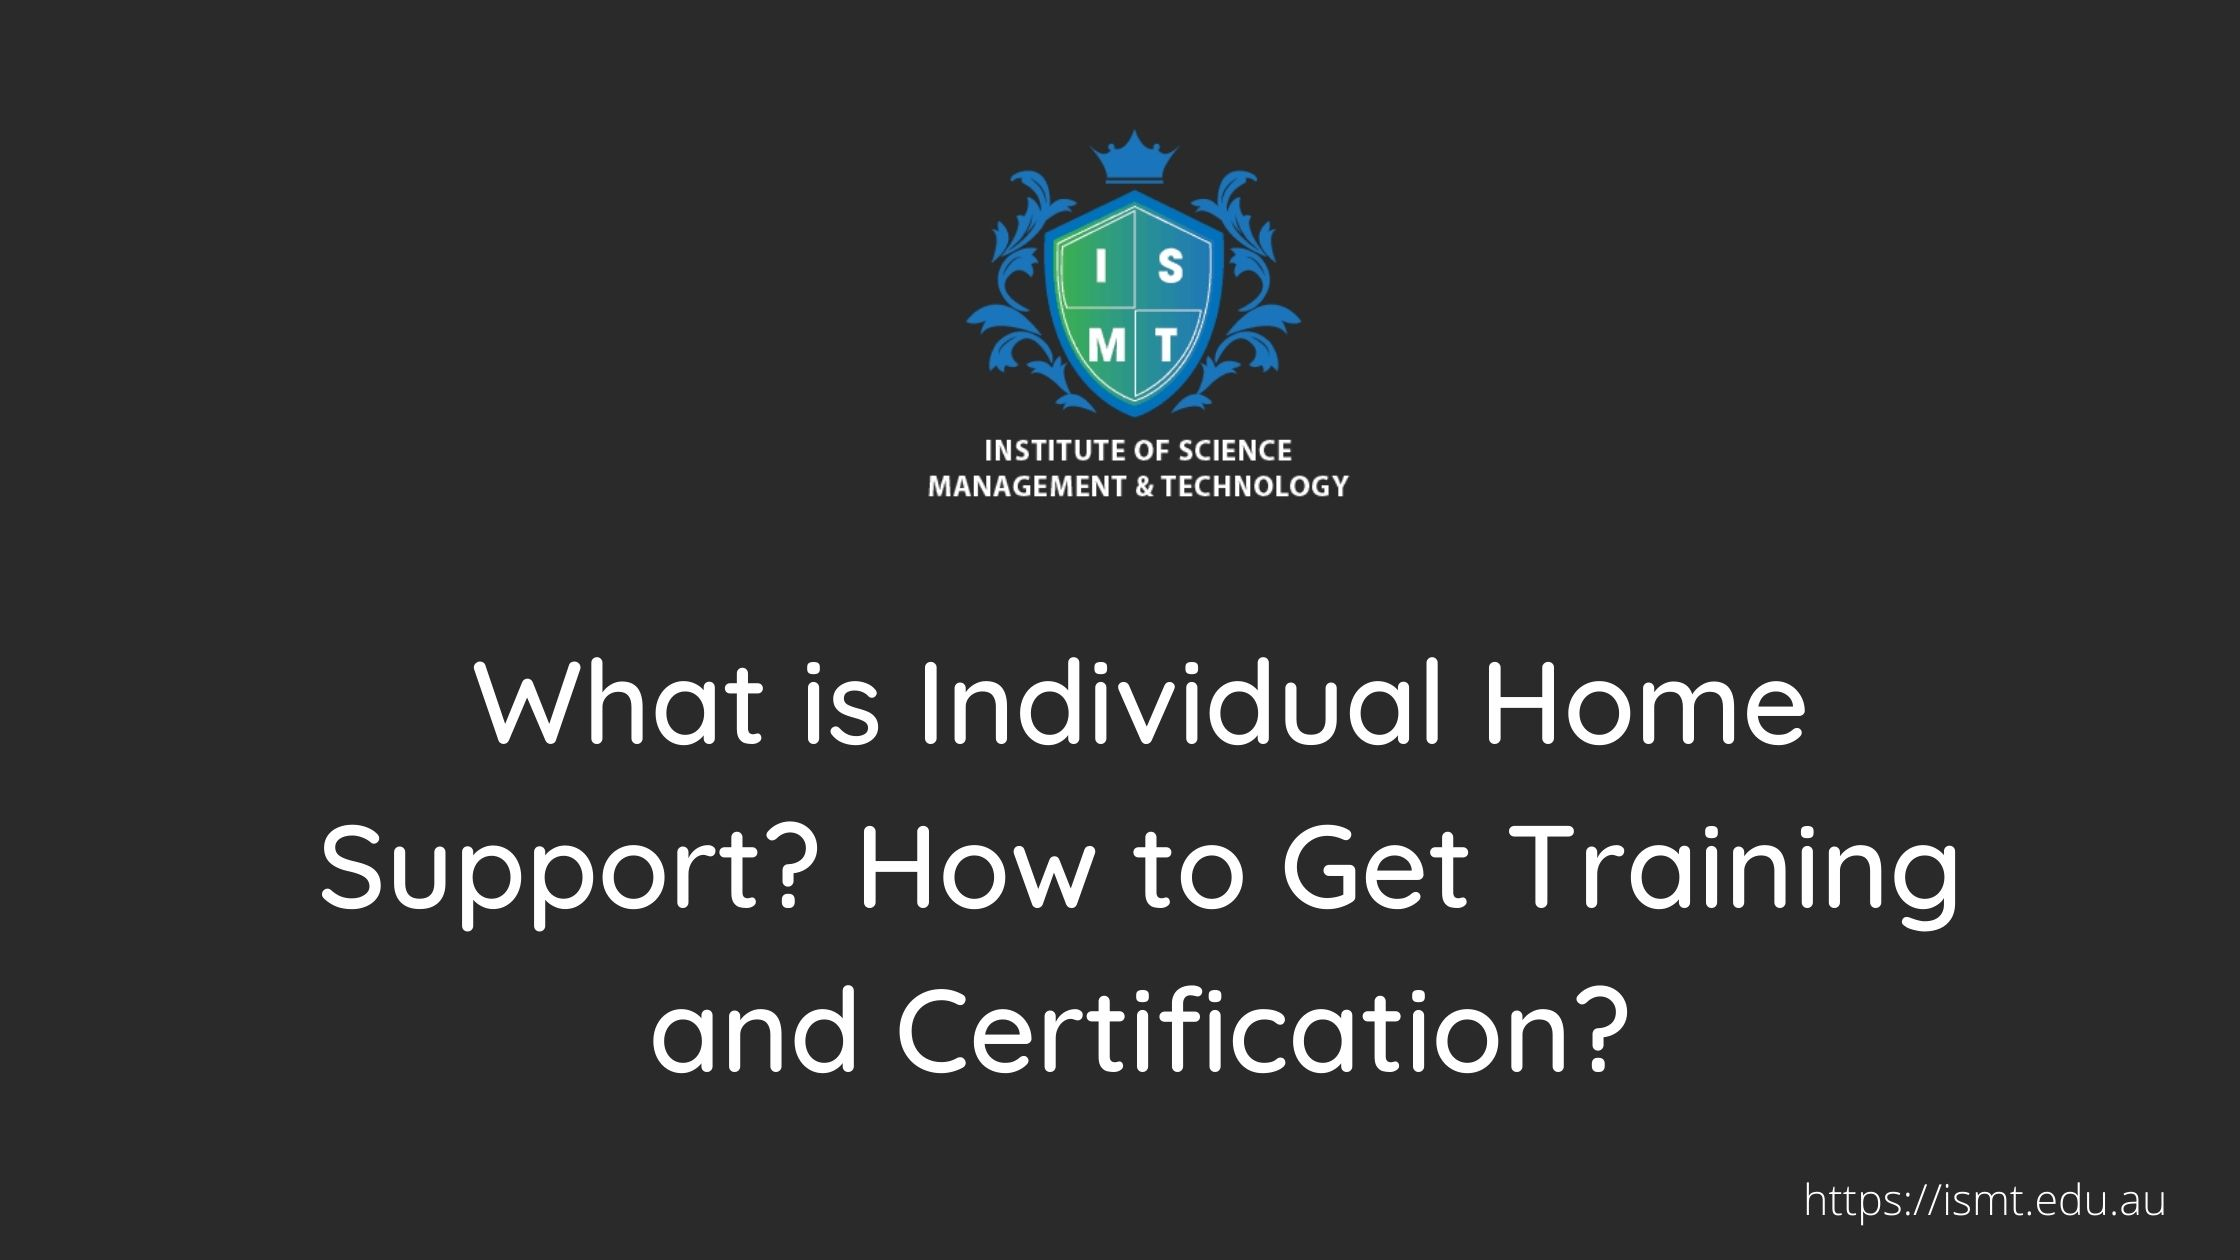 What is Individual Home Support? How to Get Training and Certification?